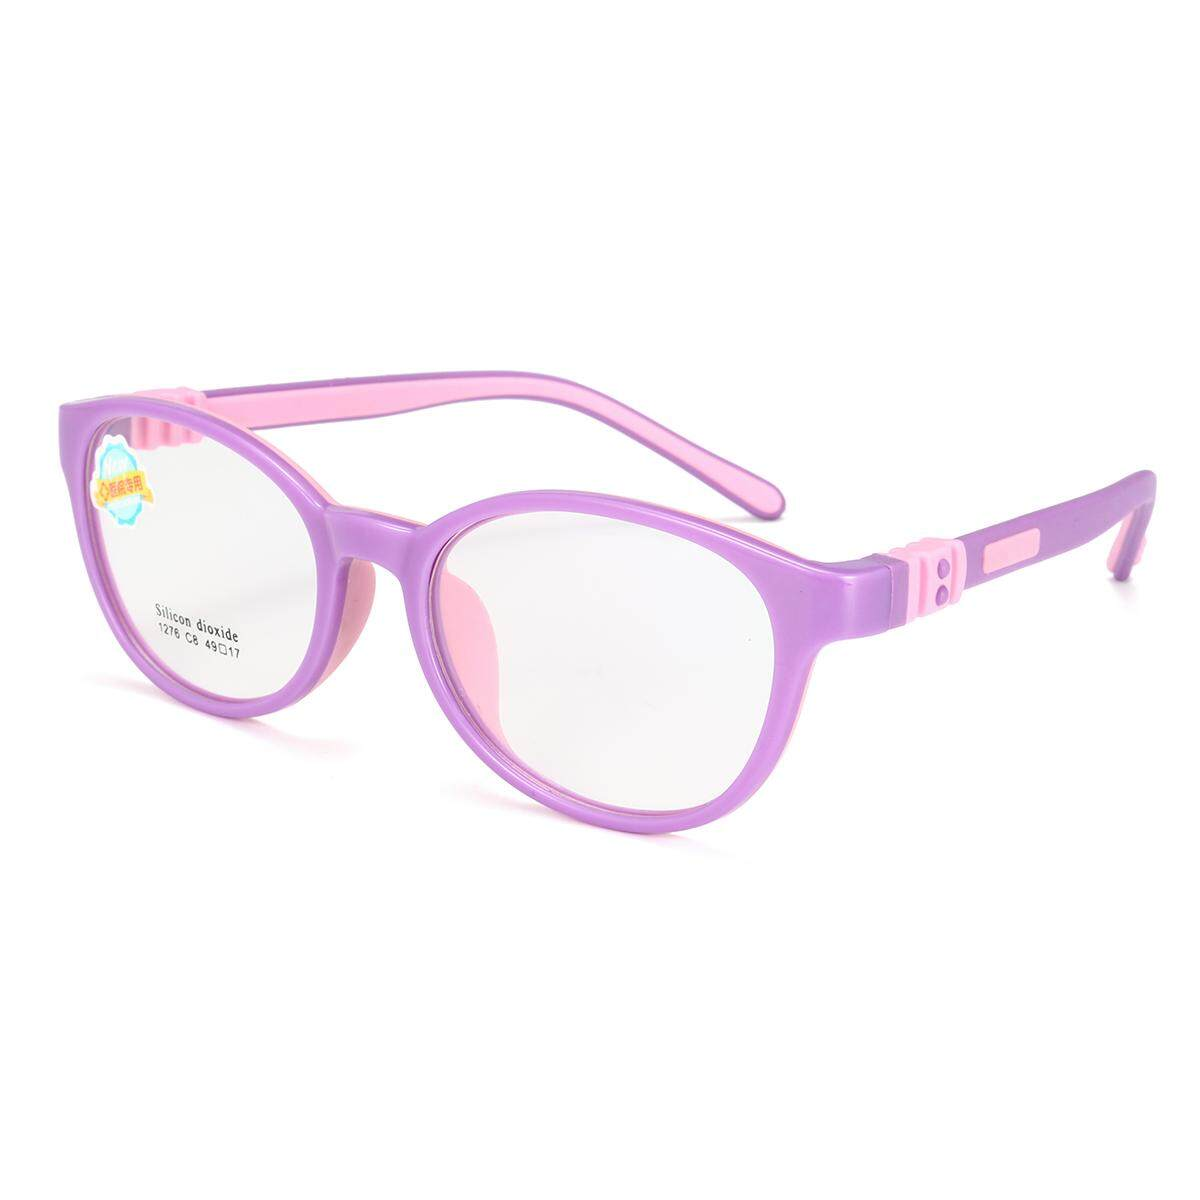 Child's Children Girl Boy Silicone Flexible Eyeglasses Frames Myopia Glasses RX